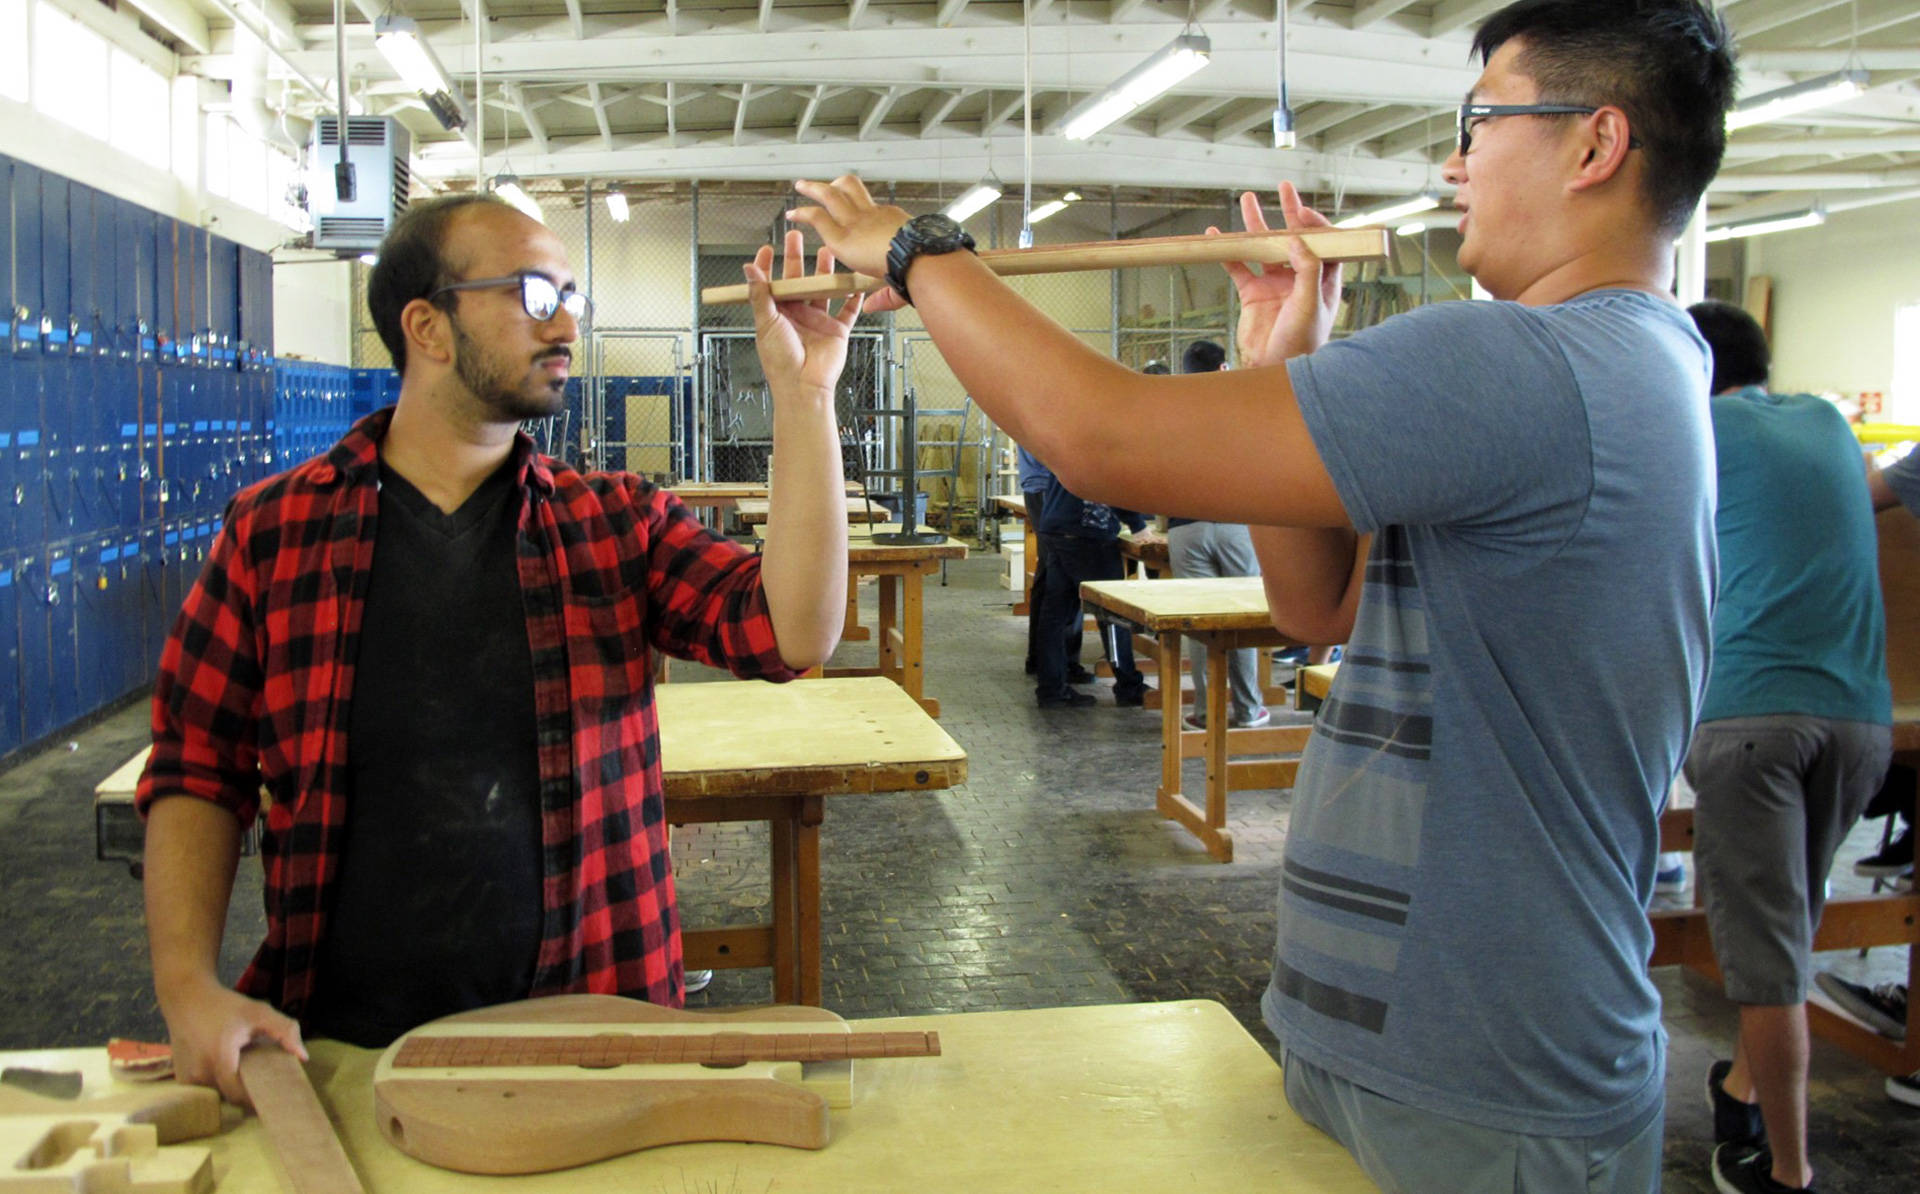 Students Build Electric Guitars in the Name of Science